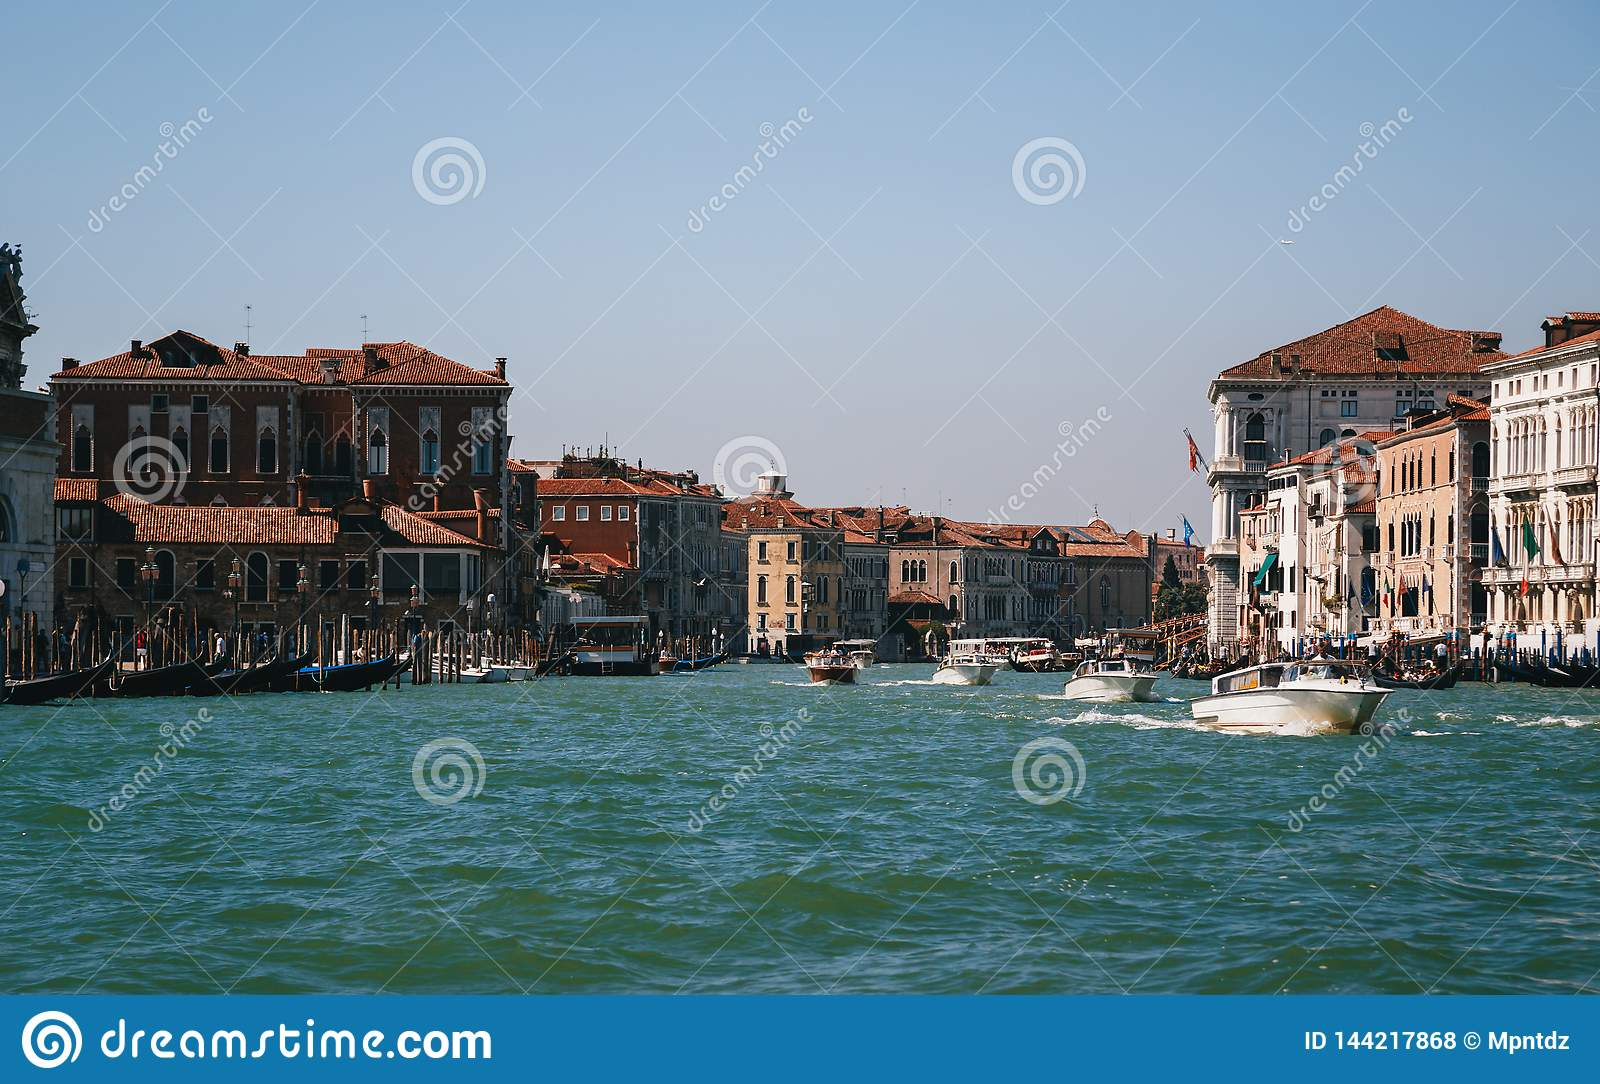 The entrance to the Grand Canal in Venice, view from the boat. Italy, summer time, travel concept